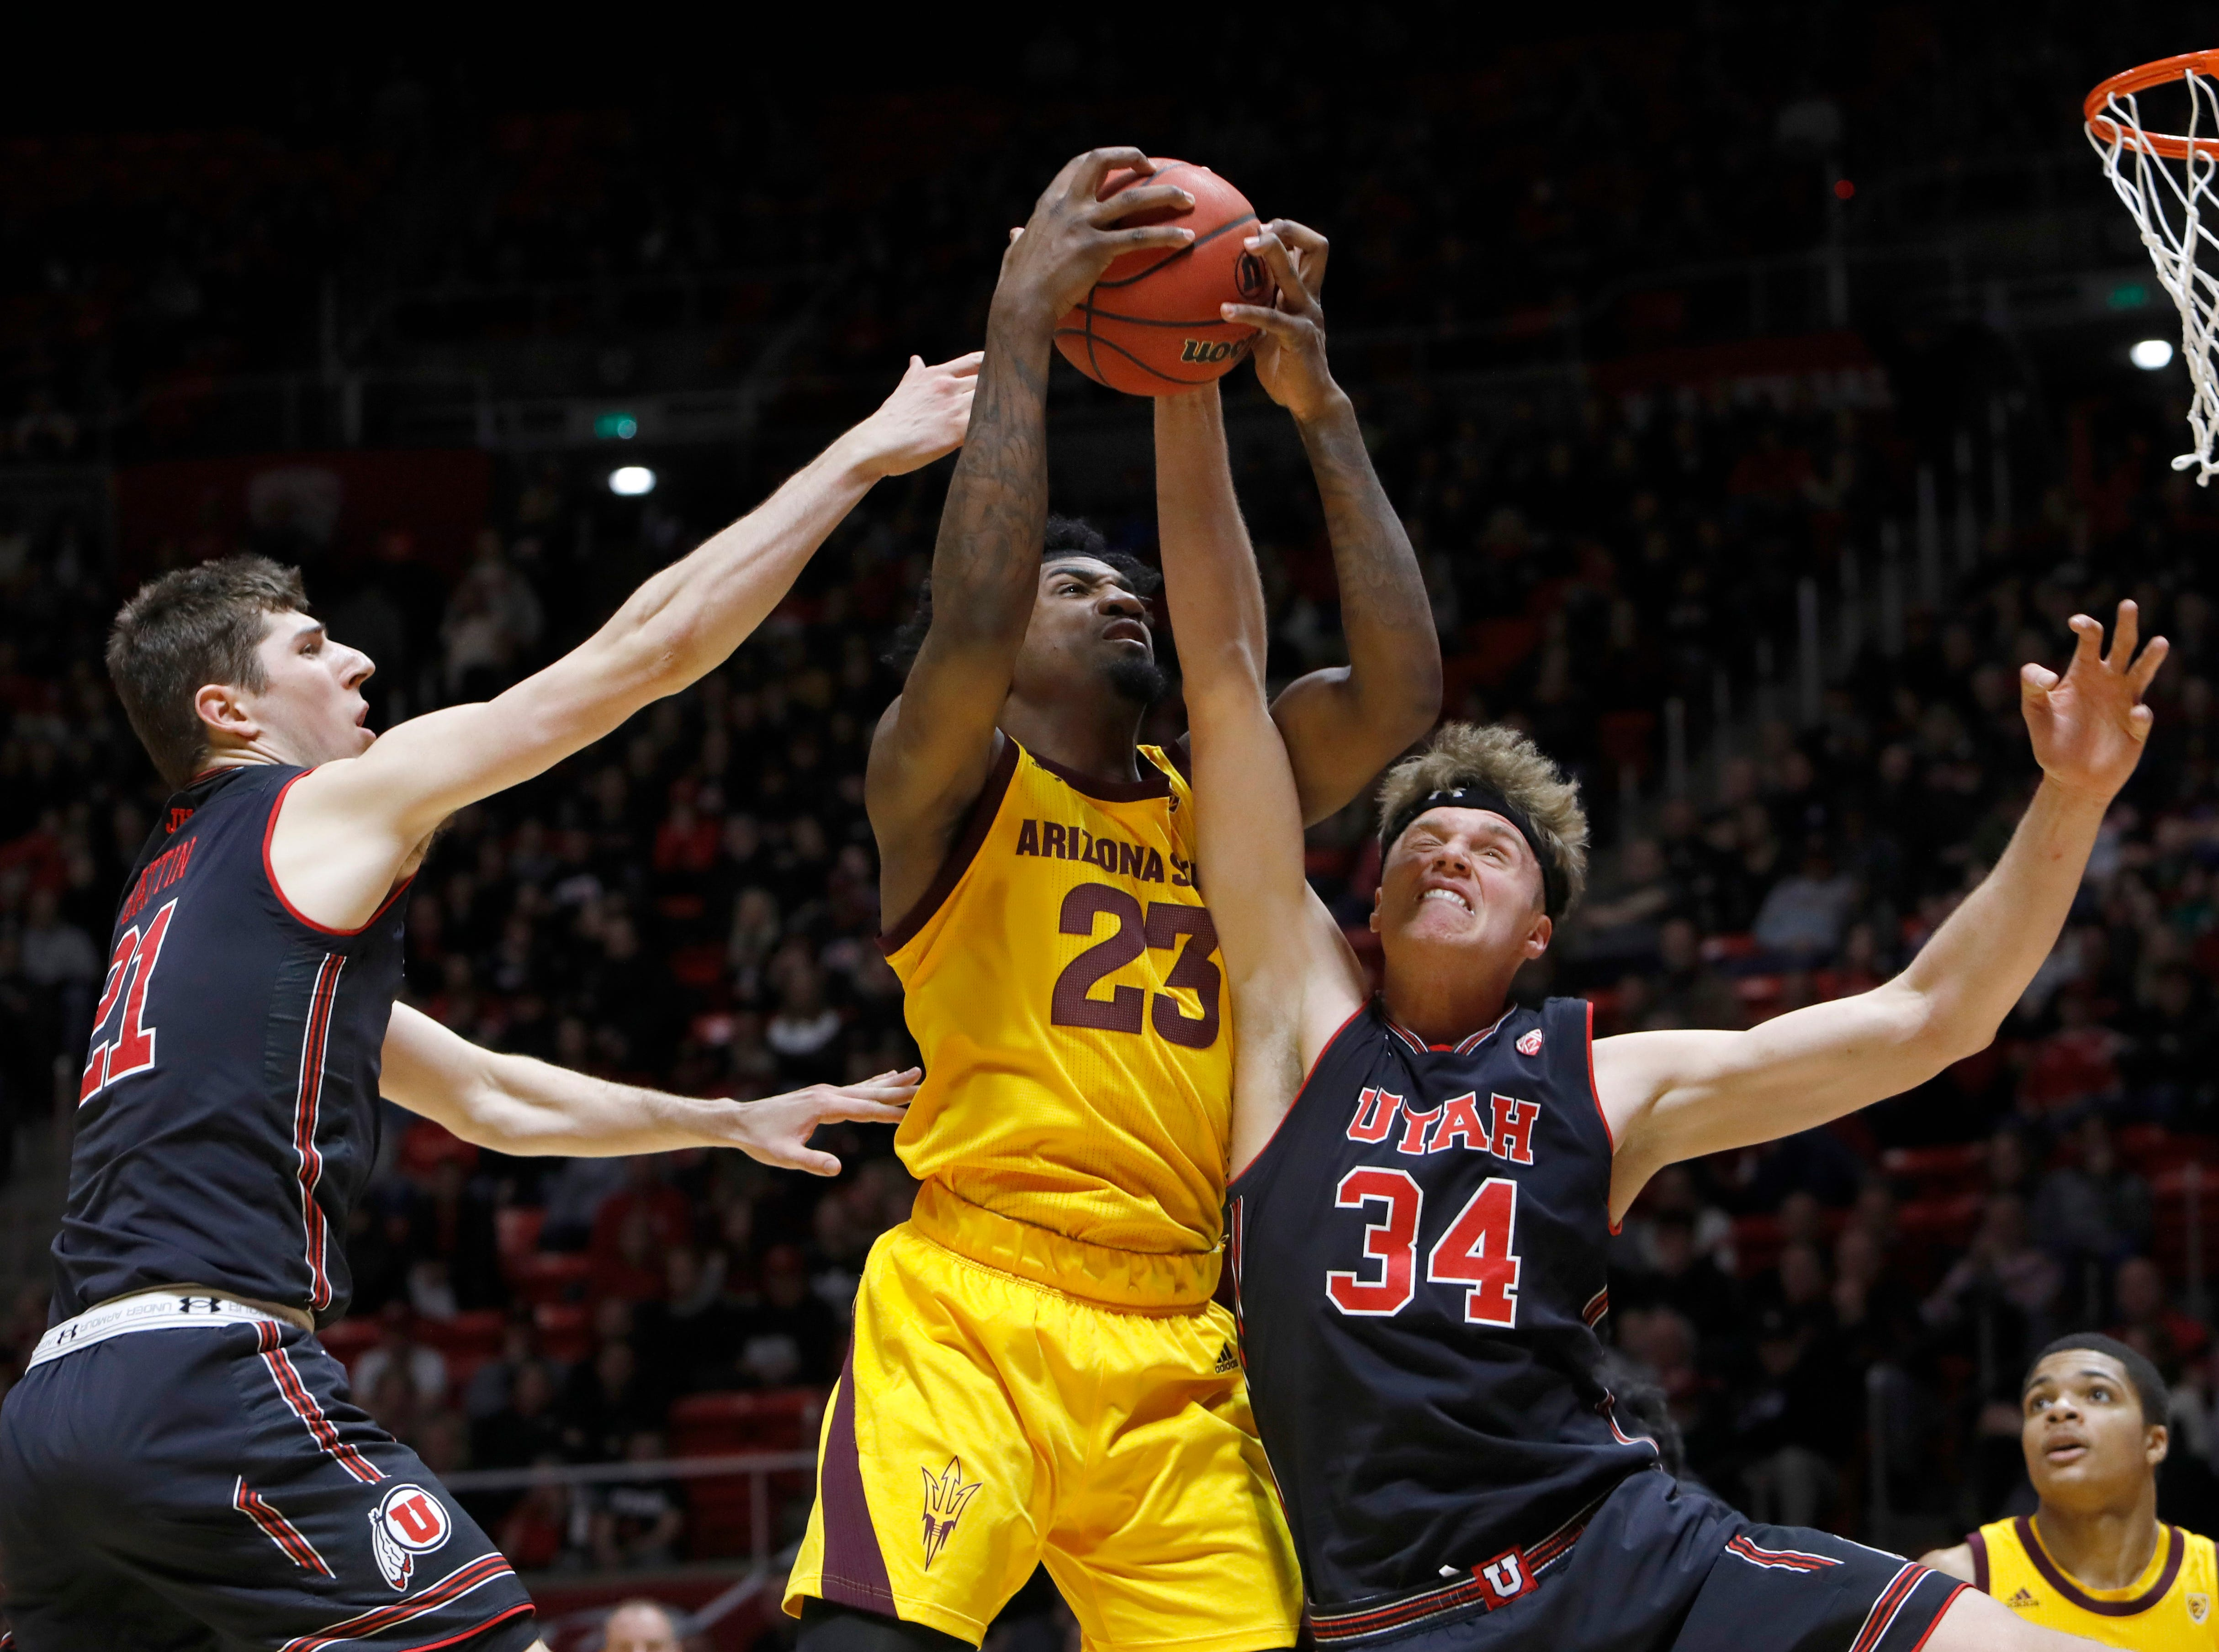 Utah's Riley Battin (21) and Jayce Johnson (34) compete with Arizona State's Romello White (23) for a rebound during the first half of an NCAA college basketball game Saturday, Feb. 16, 2019, in Salt Lake City. (AP Photo/Kim Raff)